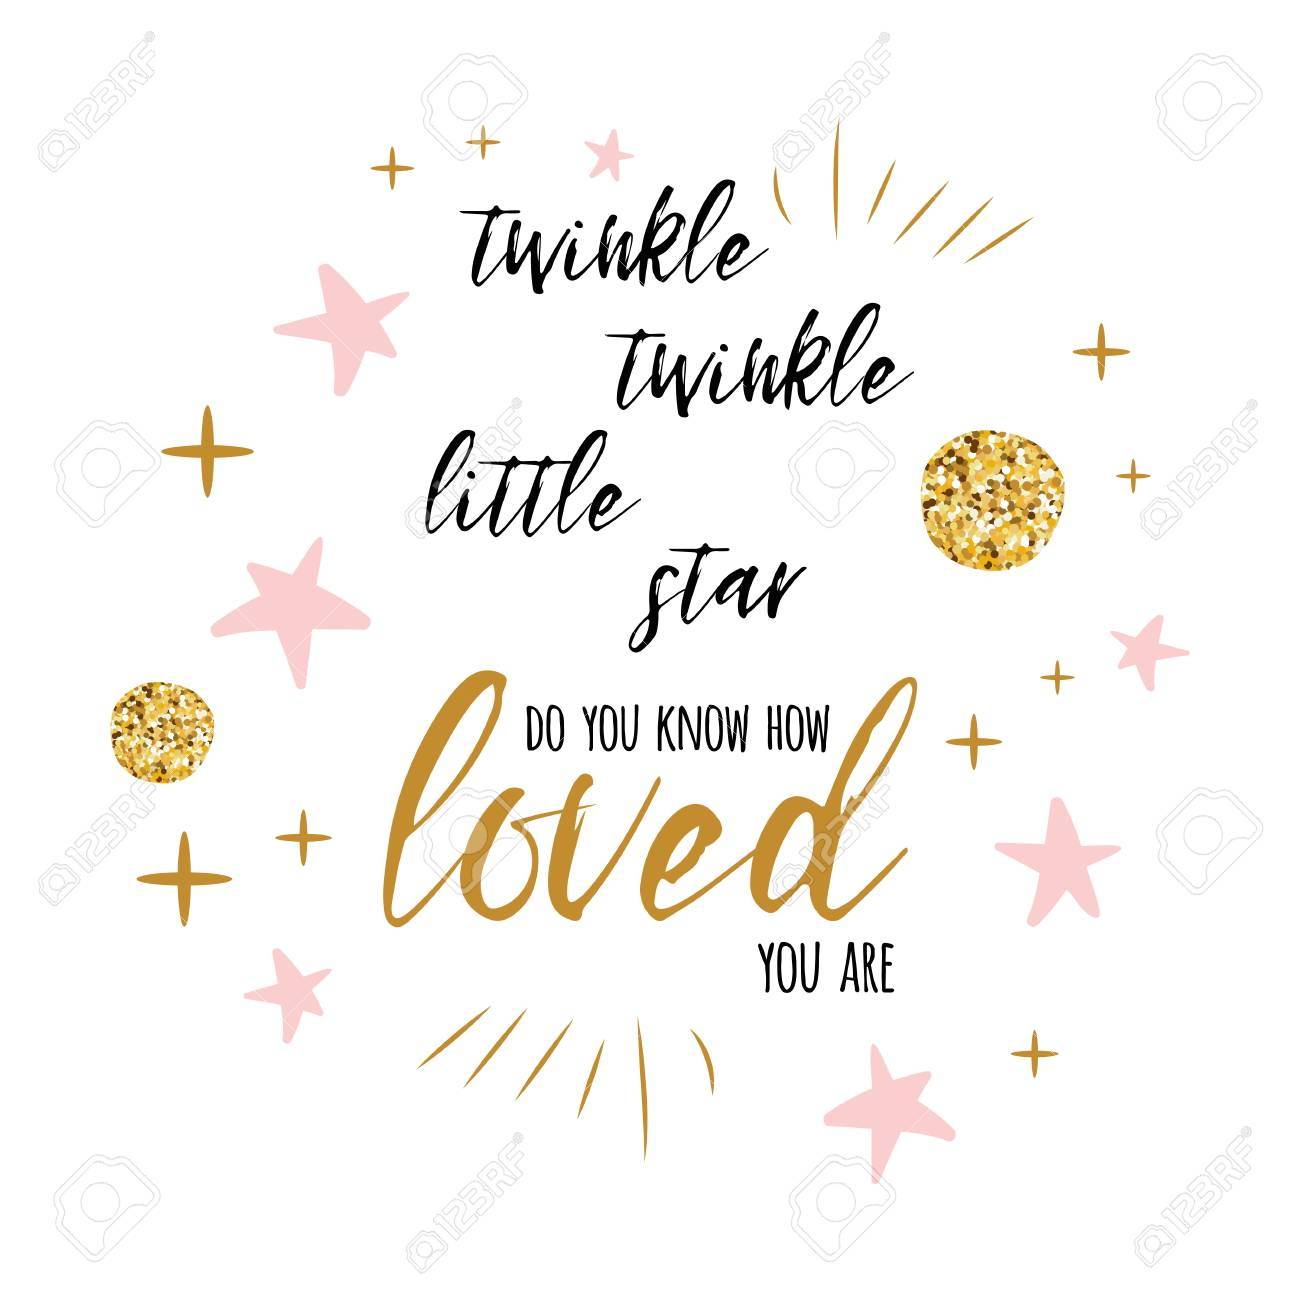 Twinkle Twinkle Little Star Text With Gold Ornament And Pink